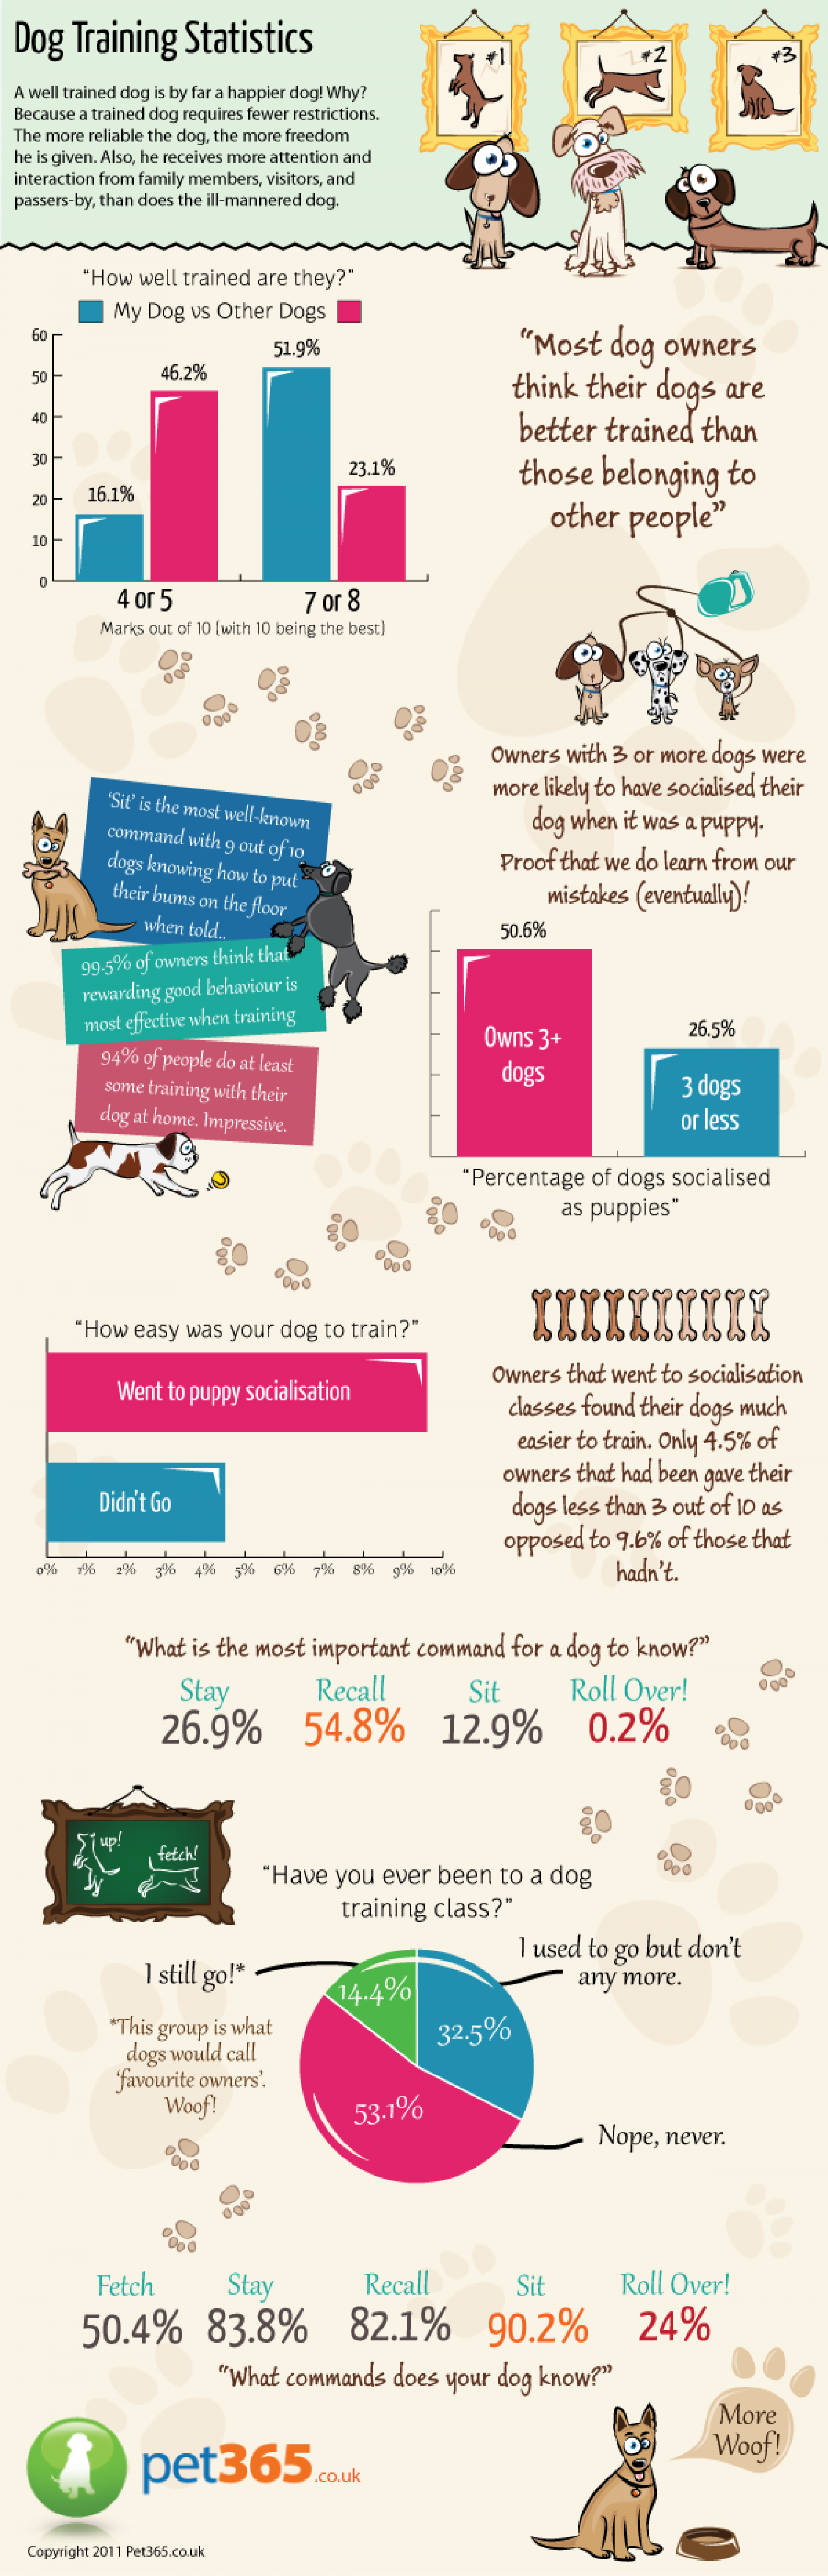 Dog Training Statistics Infographic